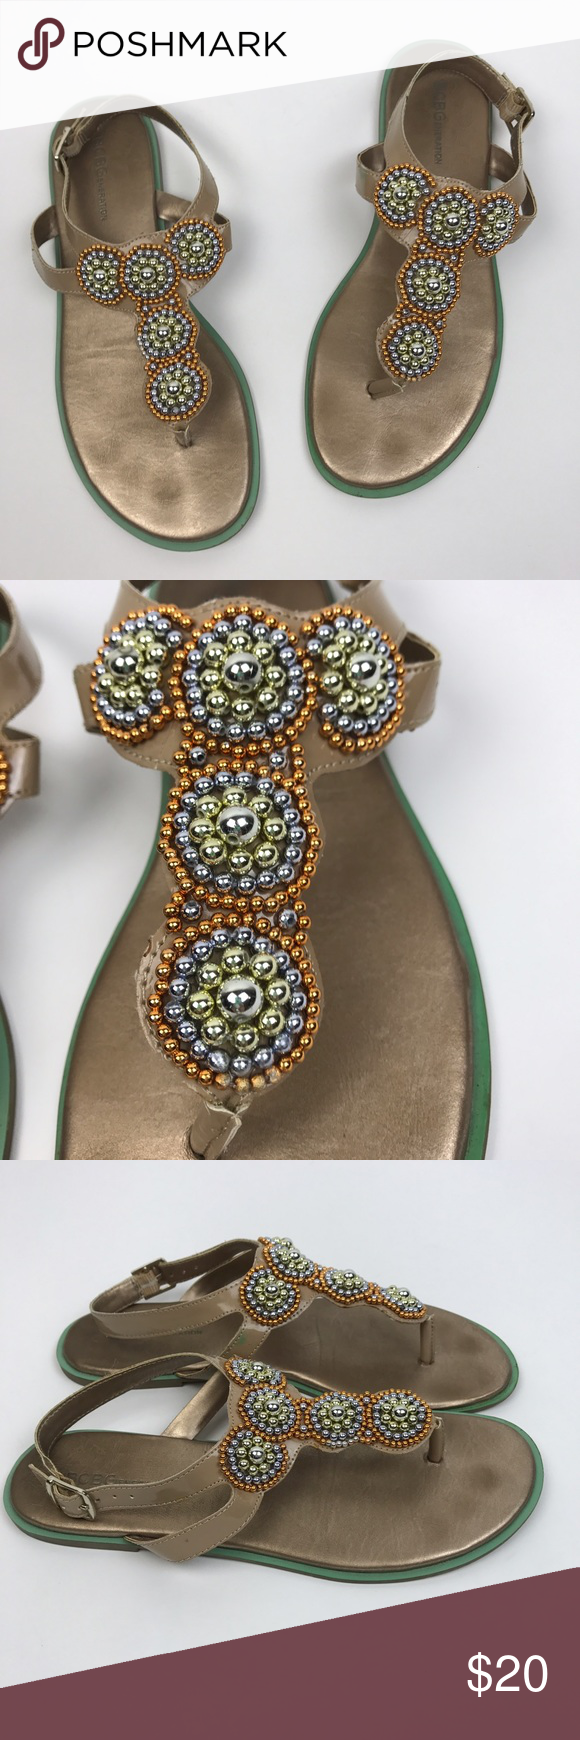 [BCBGeneration] Laceyy Beaded Embellished Sandals Flat Thong sandals with adjustable buckle ankle strap. Patent finish. Colorful beading and embellishment on top. Nude and mint green color combo.   🔹Condition: Good pre-owned condition. Imprints on footbed. Scuff on inner left shoe. BCBGeneration Shoes Sandals